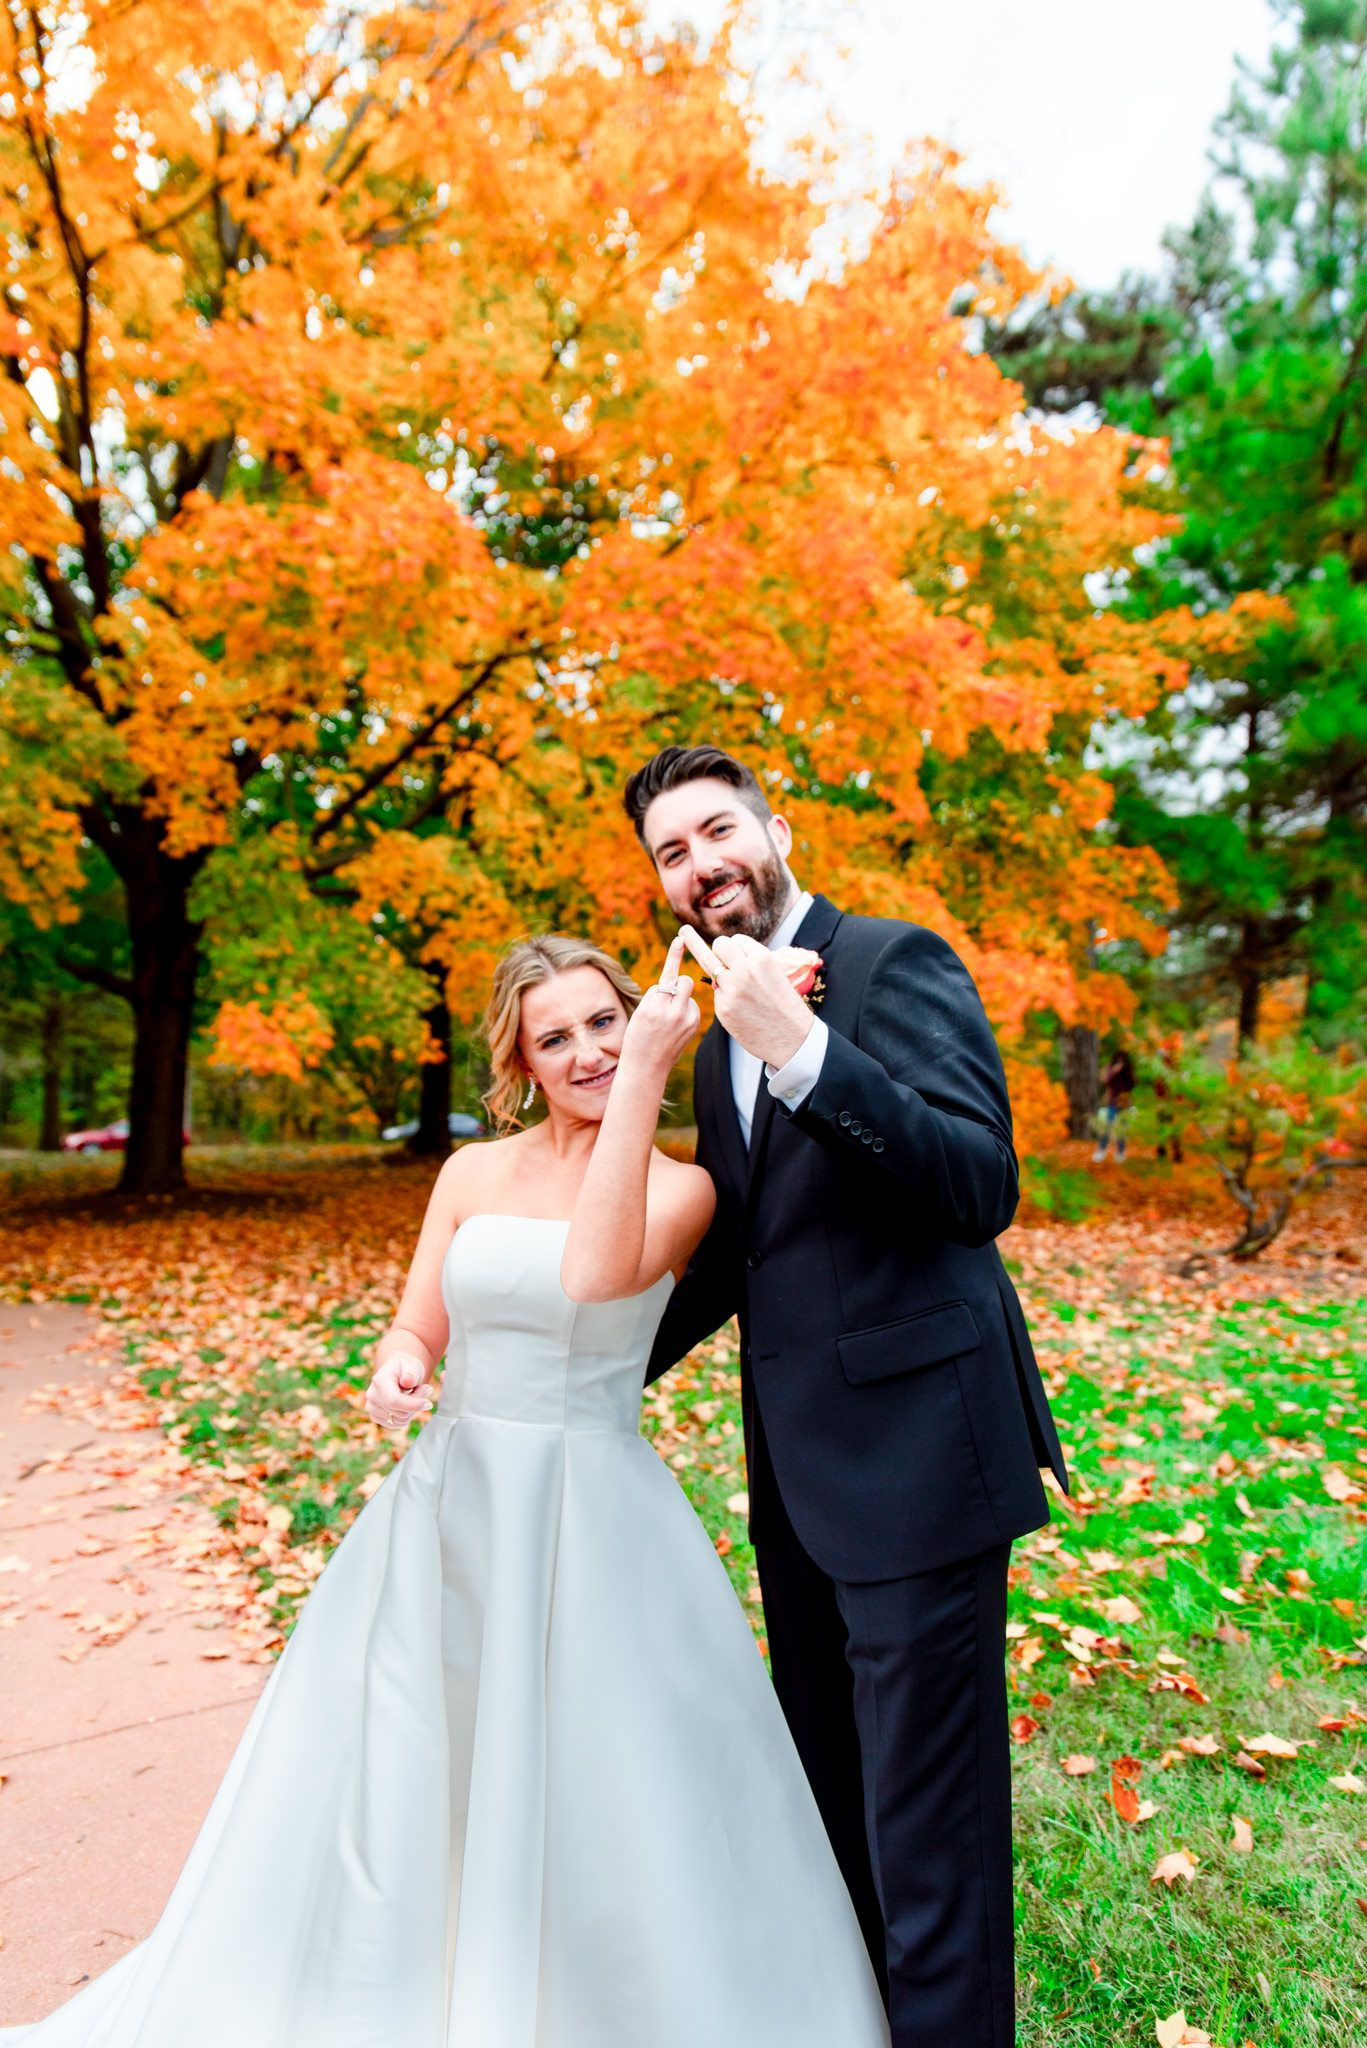 bride and groom hold up ring fingers in front of bright orange tree